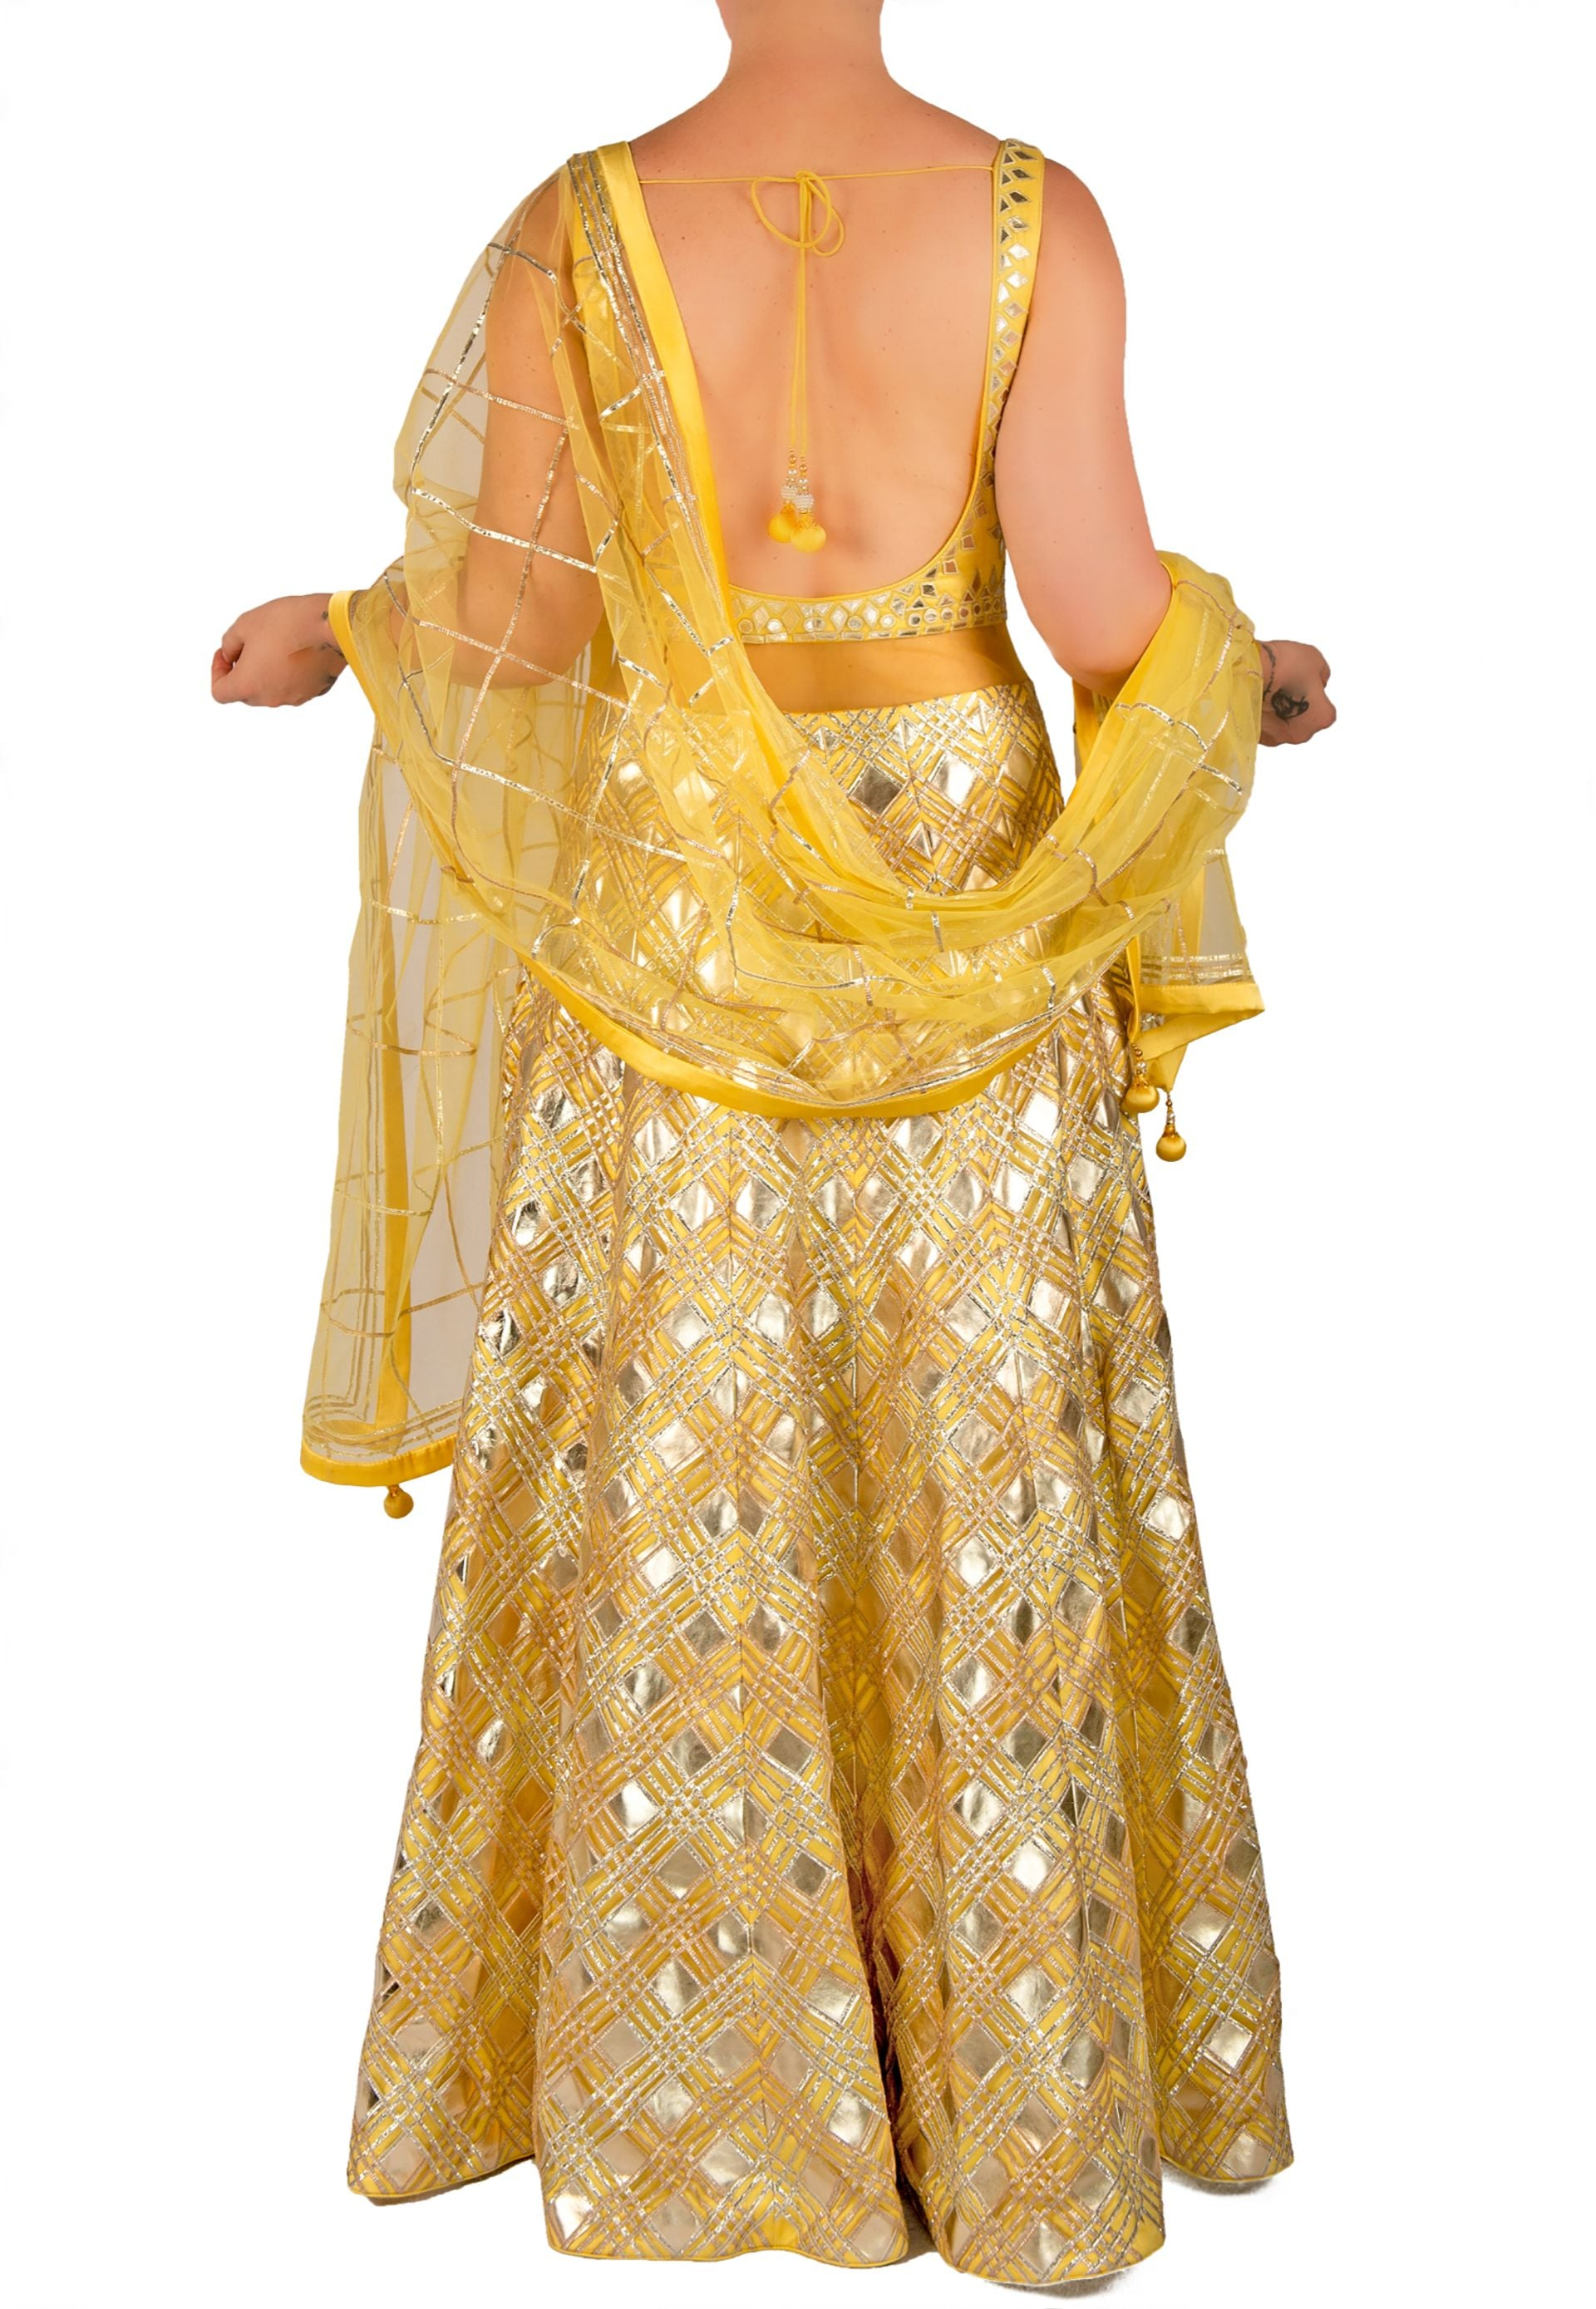 YELLOW AND SILVER ANARKALI WITH GOTA PATTI DETAIL